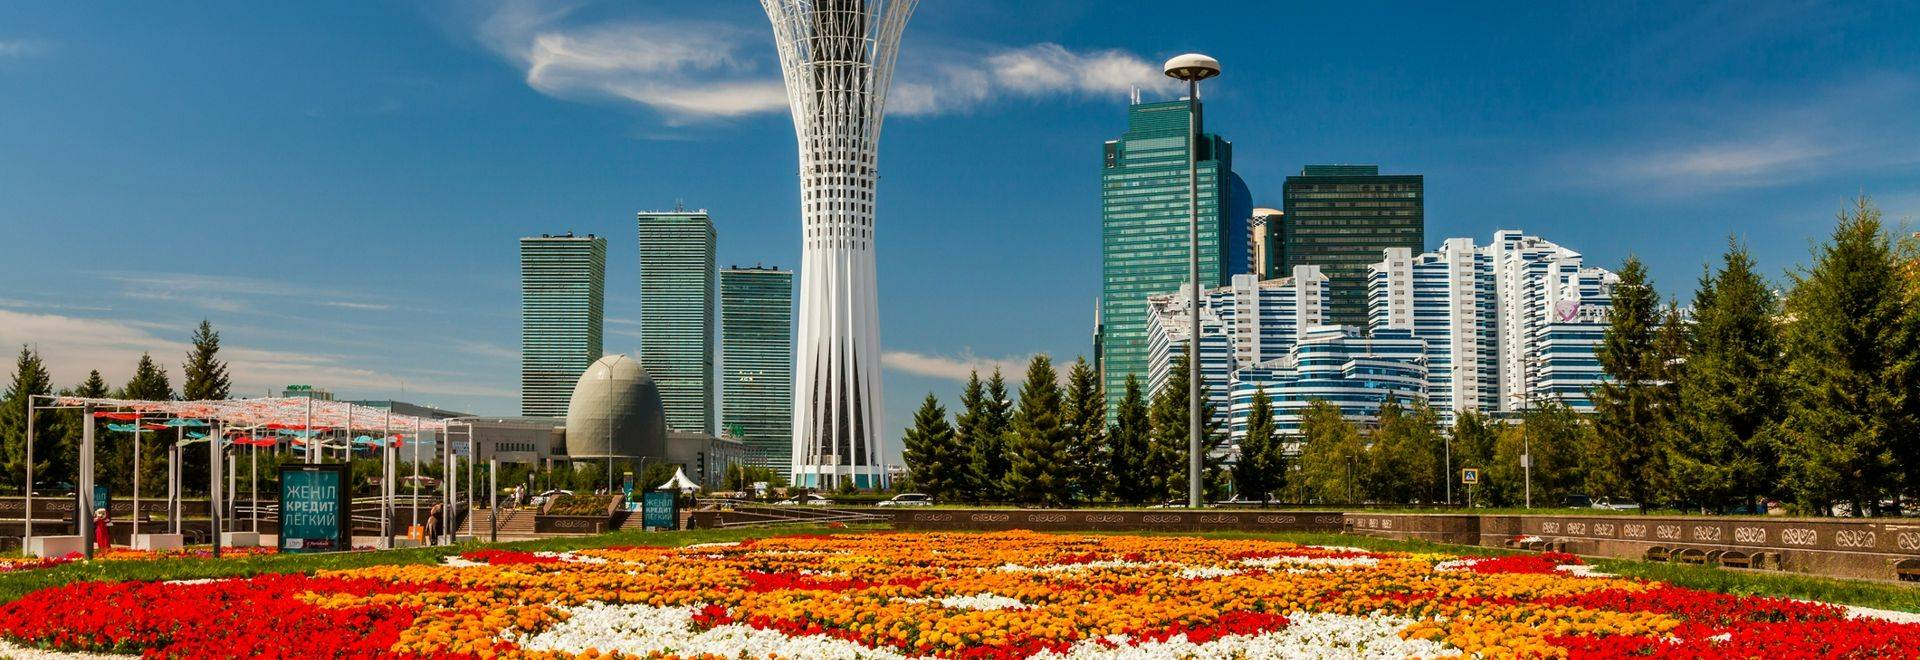 The Bayterek Tower is a Symbol of Kazakhstan  The central boulevard, with flower beds leading up to Bayterek Tower,